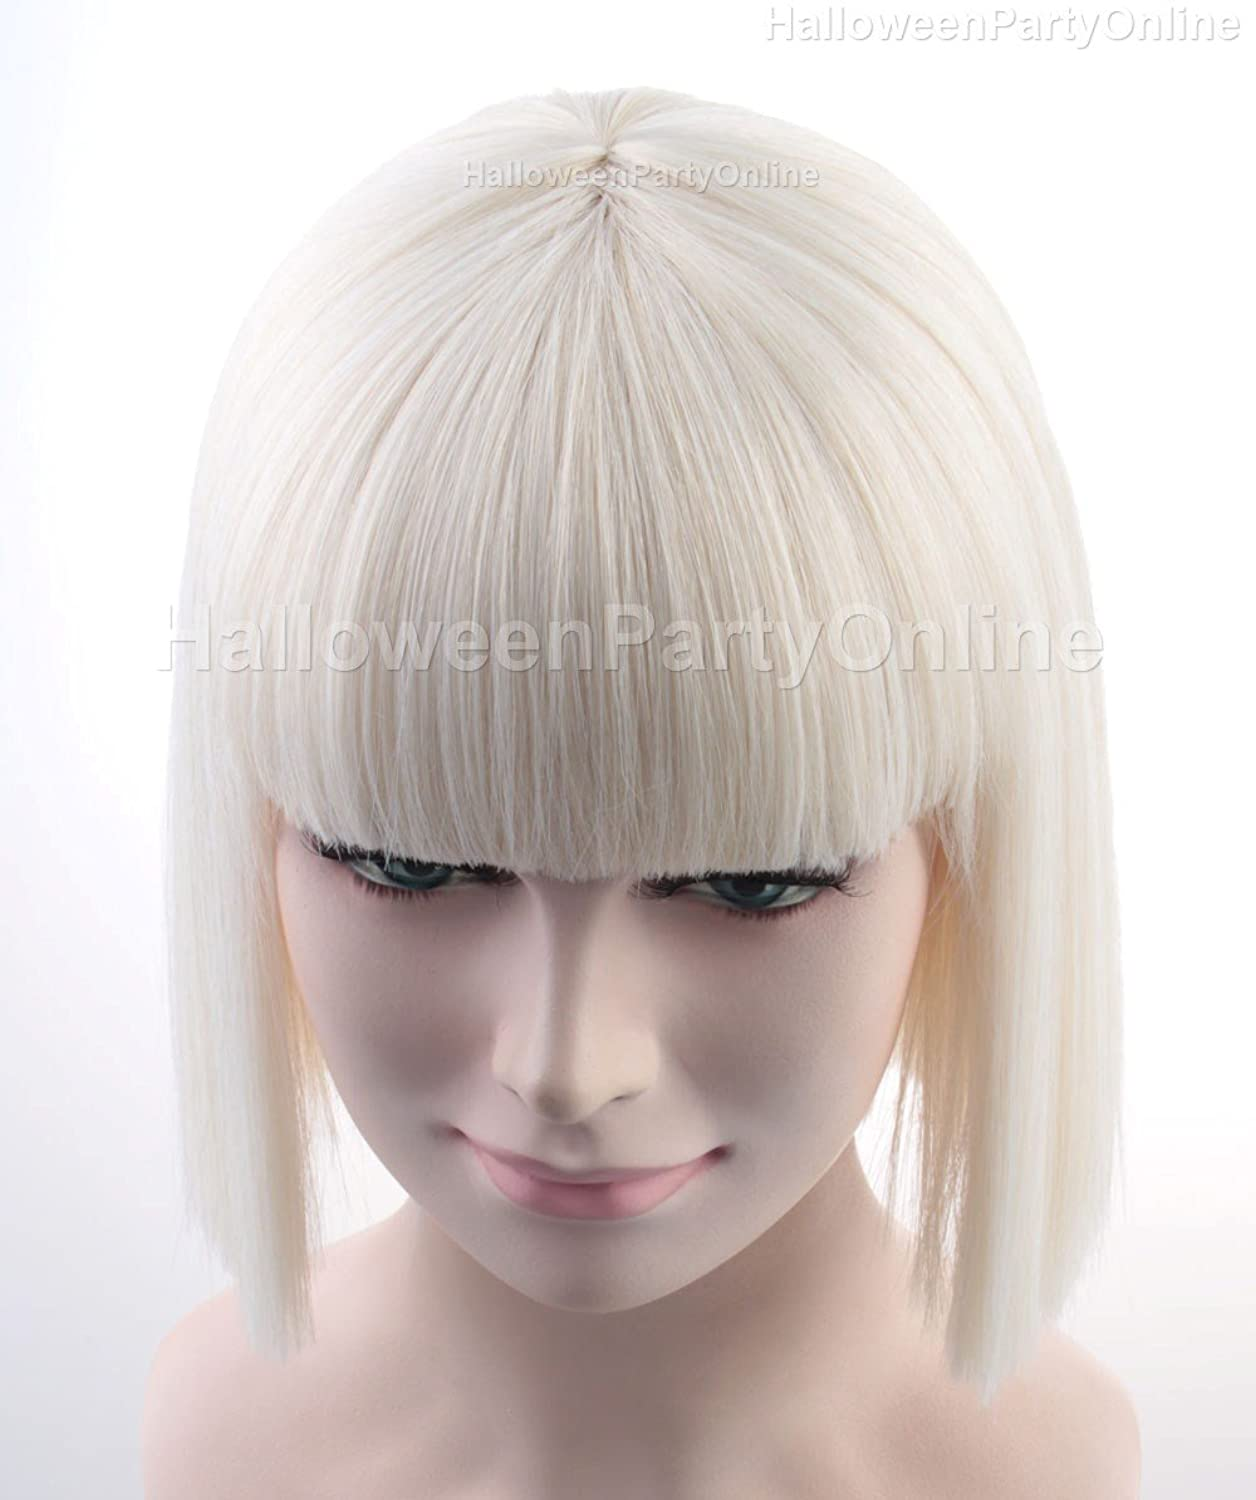 Amazon Halloween Party Online SIA Blonde Wig Costume Cosplay Idea HW 134 Clothing